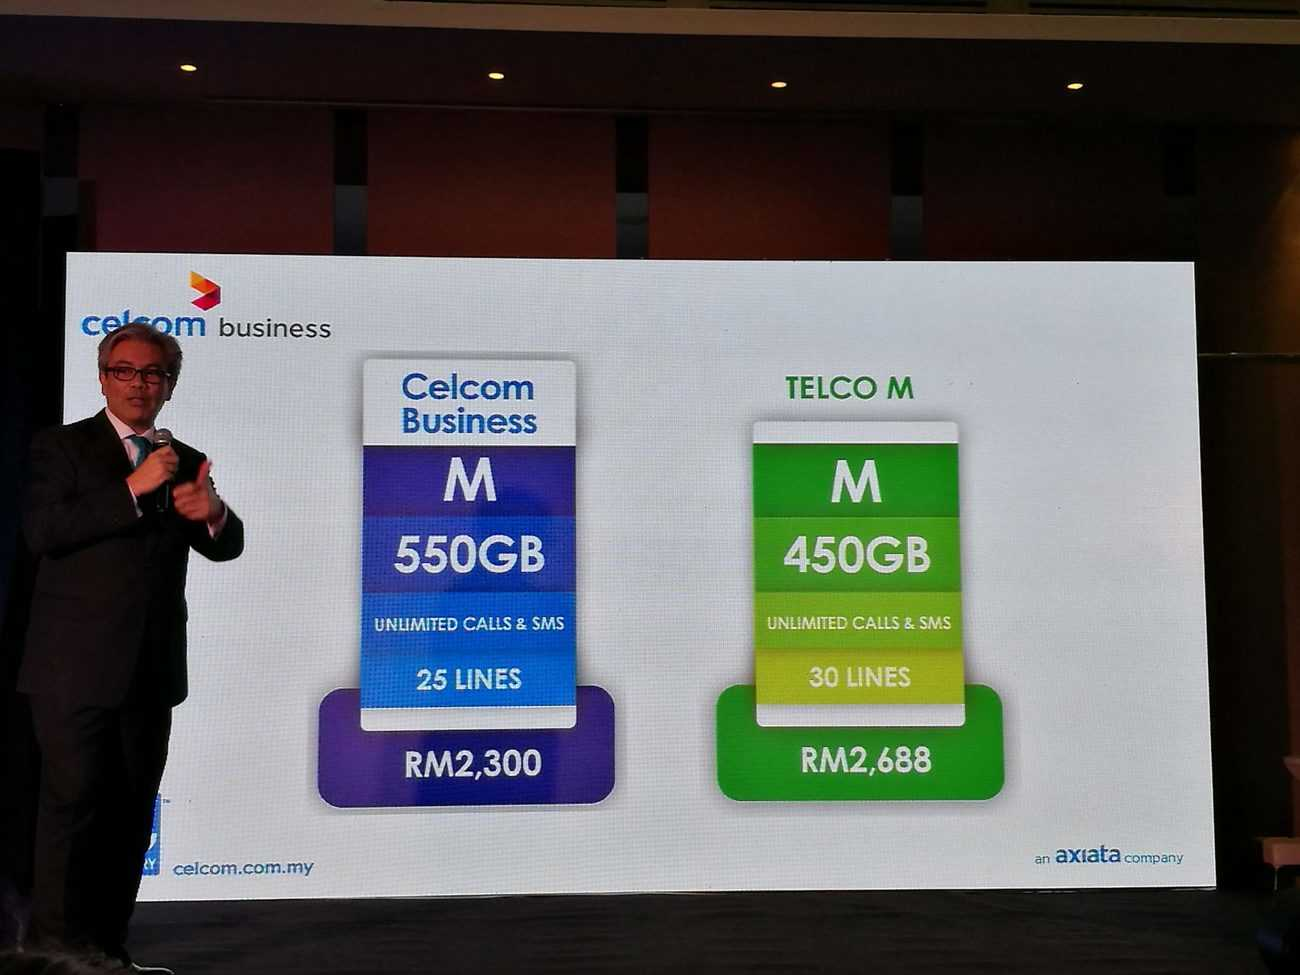 Celcom malaysia corporate and business analysis